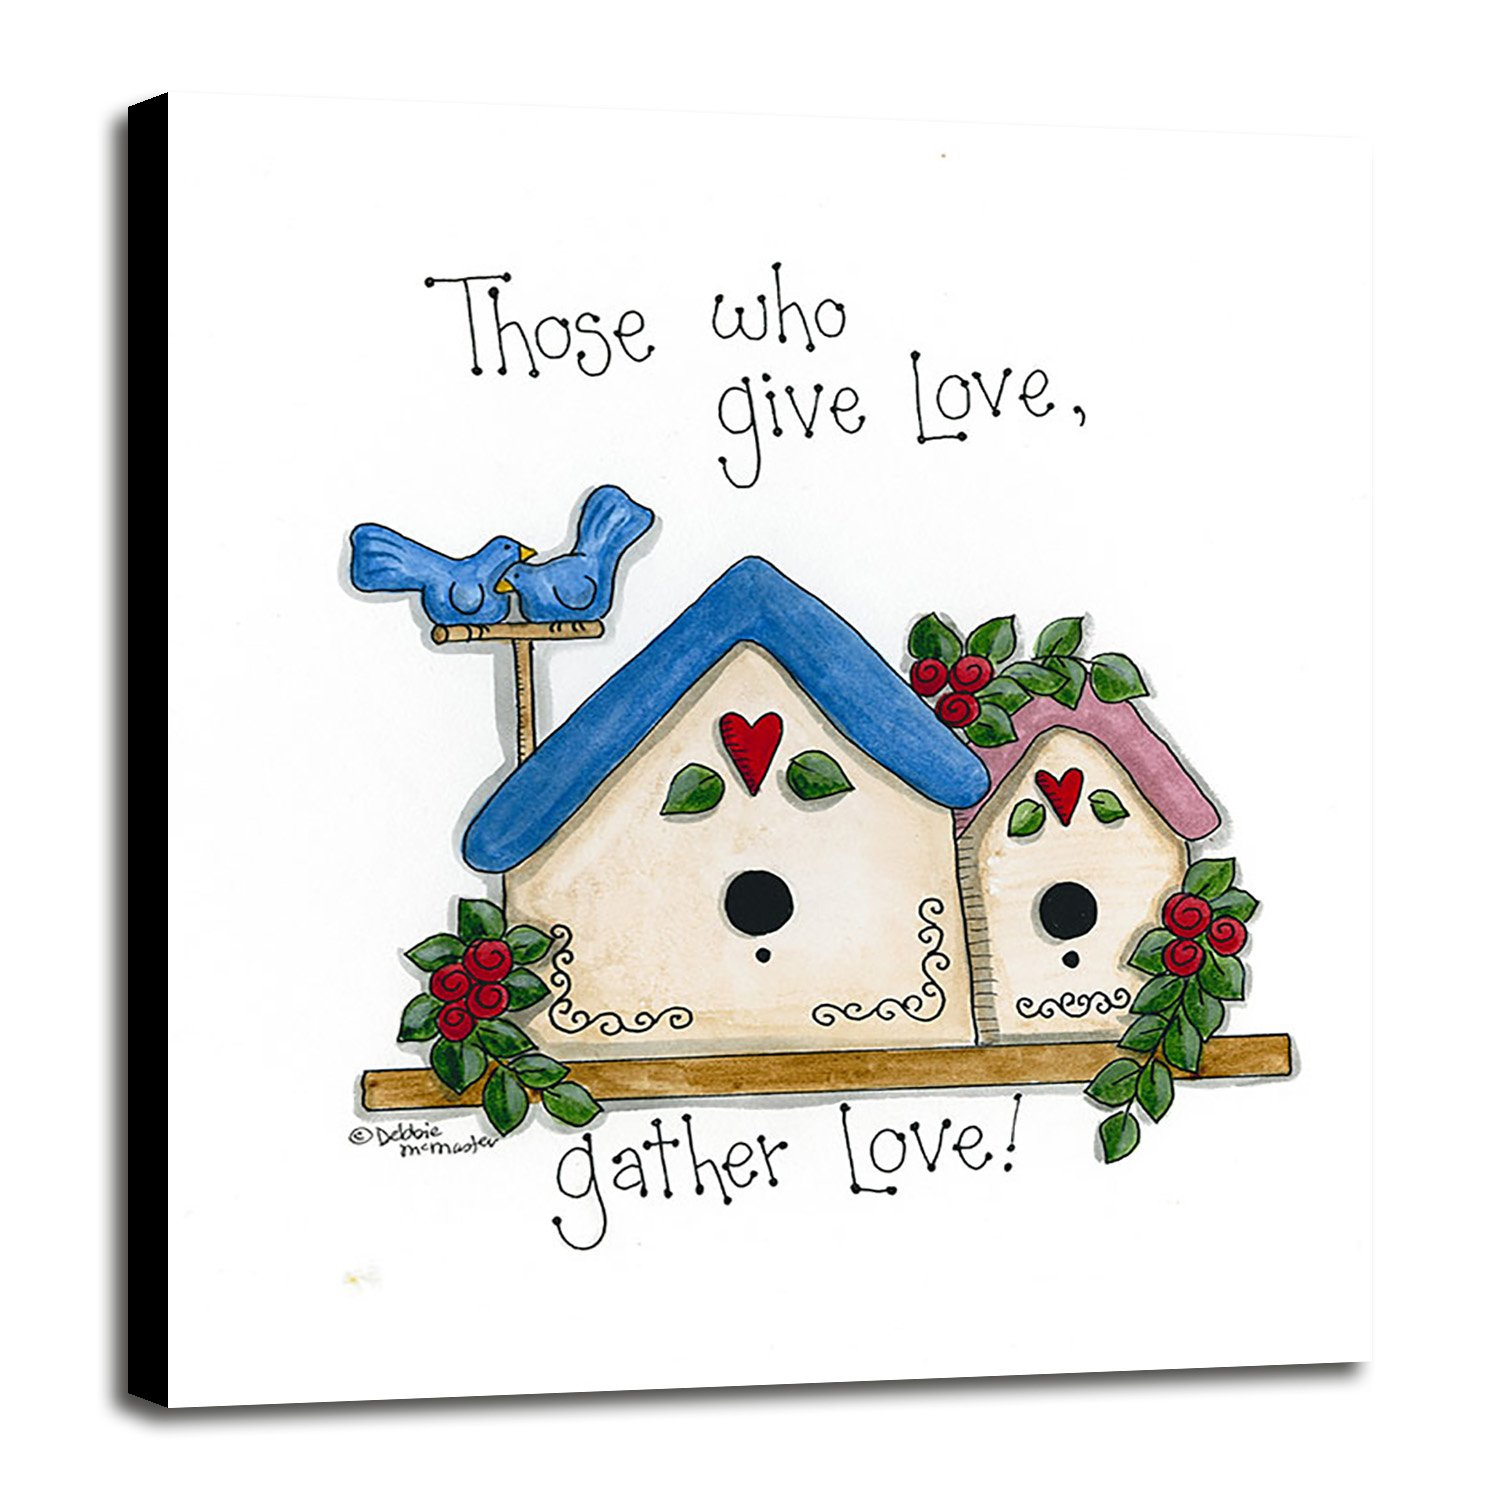 Those Who Give Love, Gather Love Framed Print 32.26''x27.48'' by Debbie McMaster